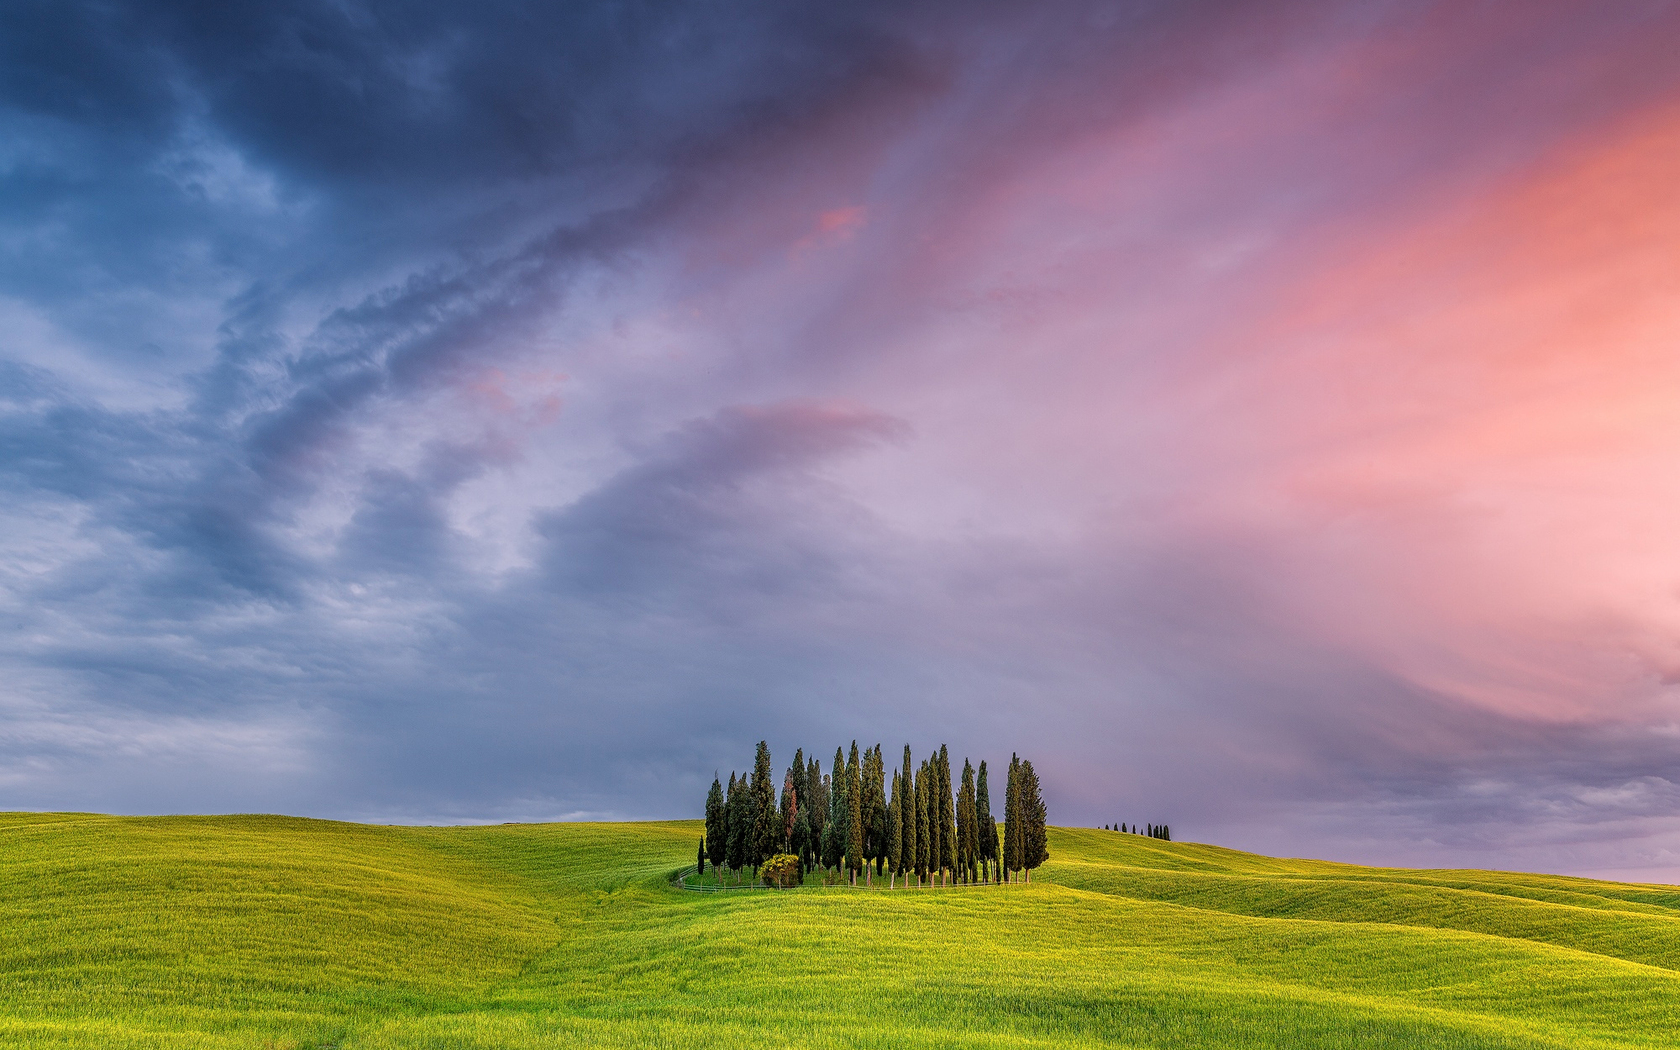 tuscany-field-in-italy.jpg